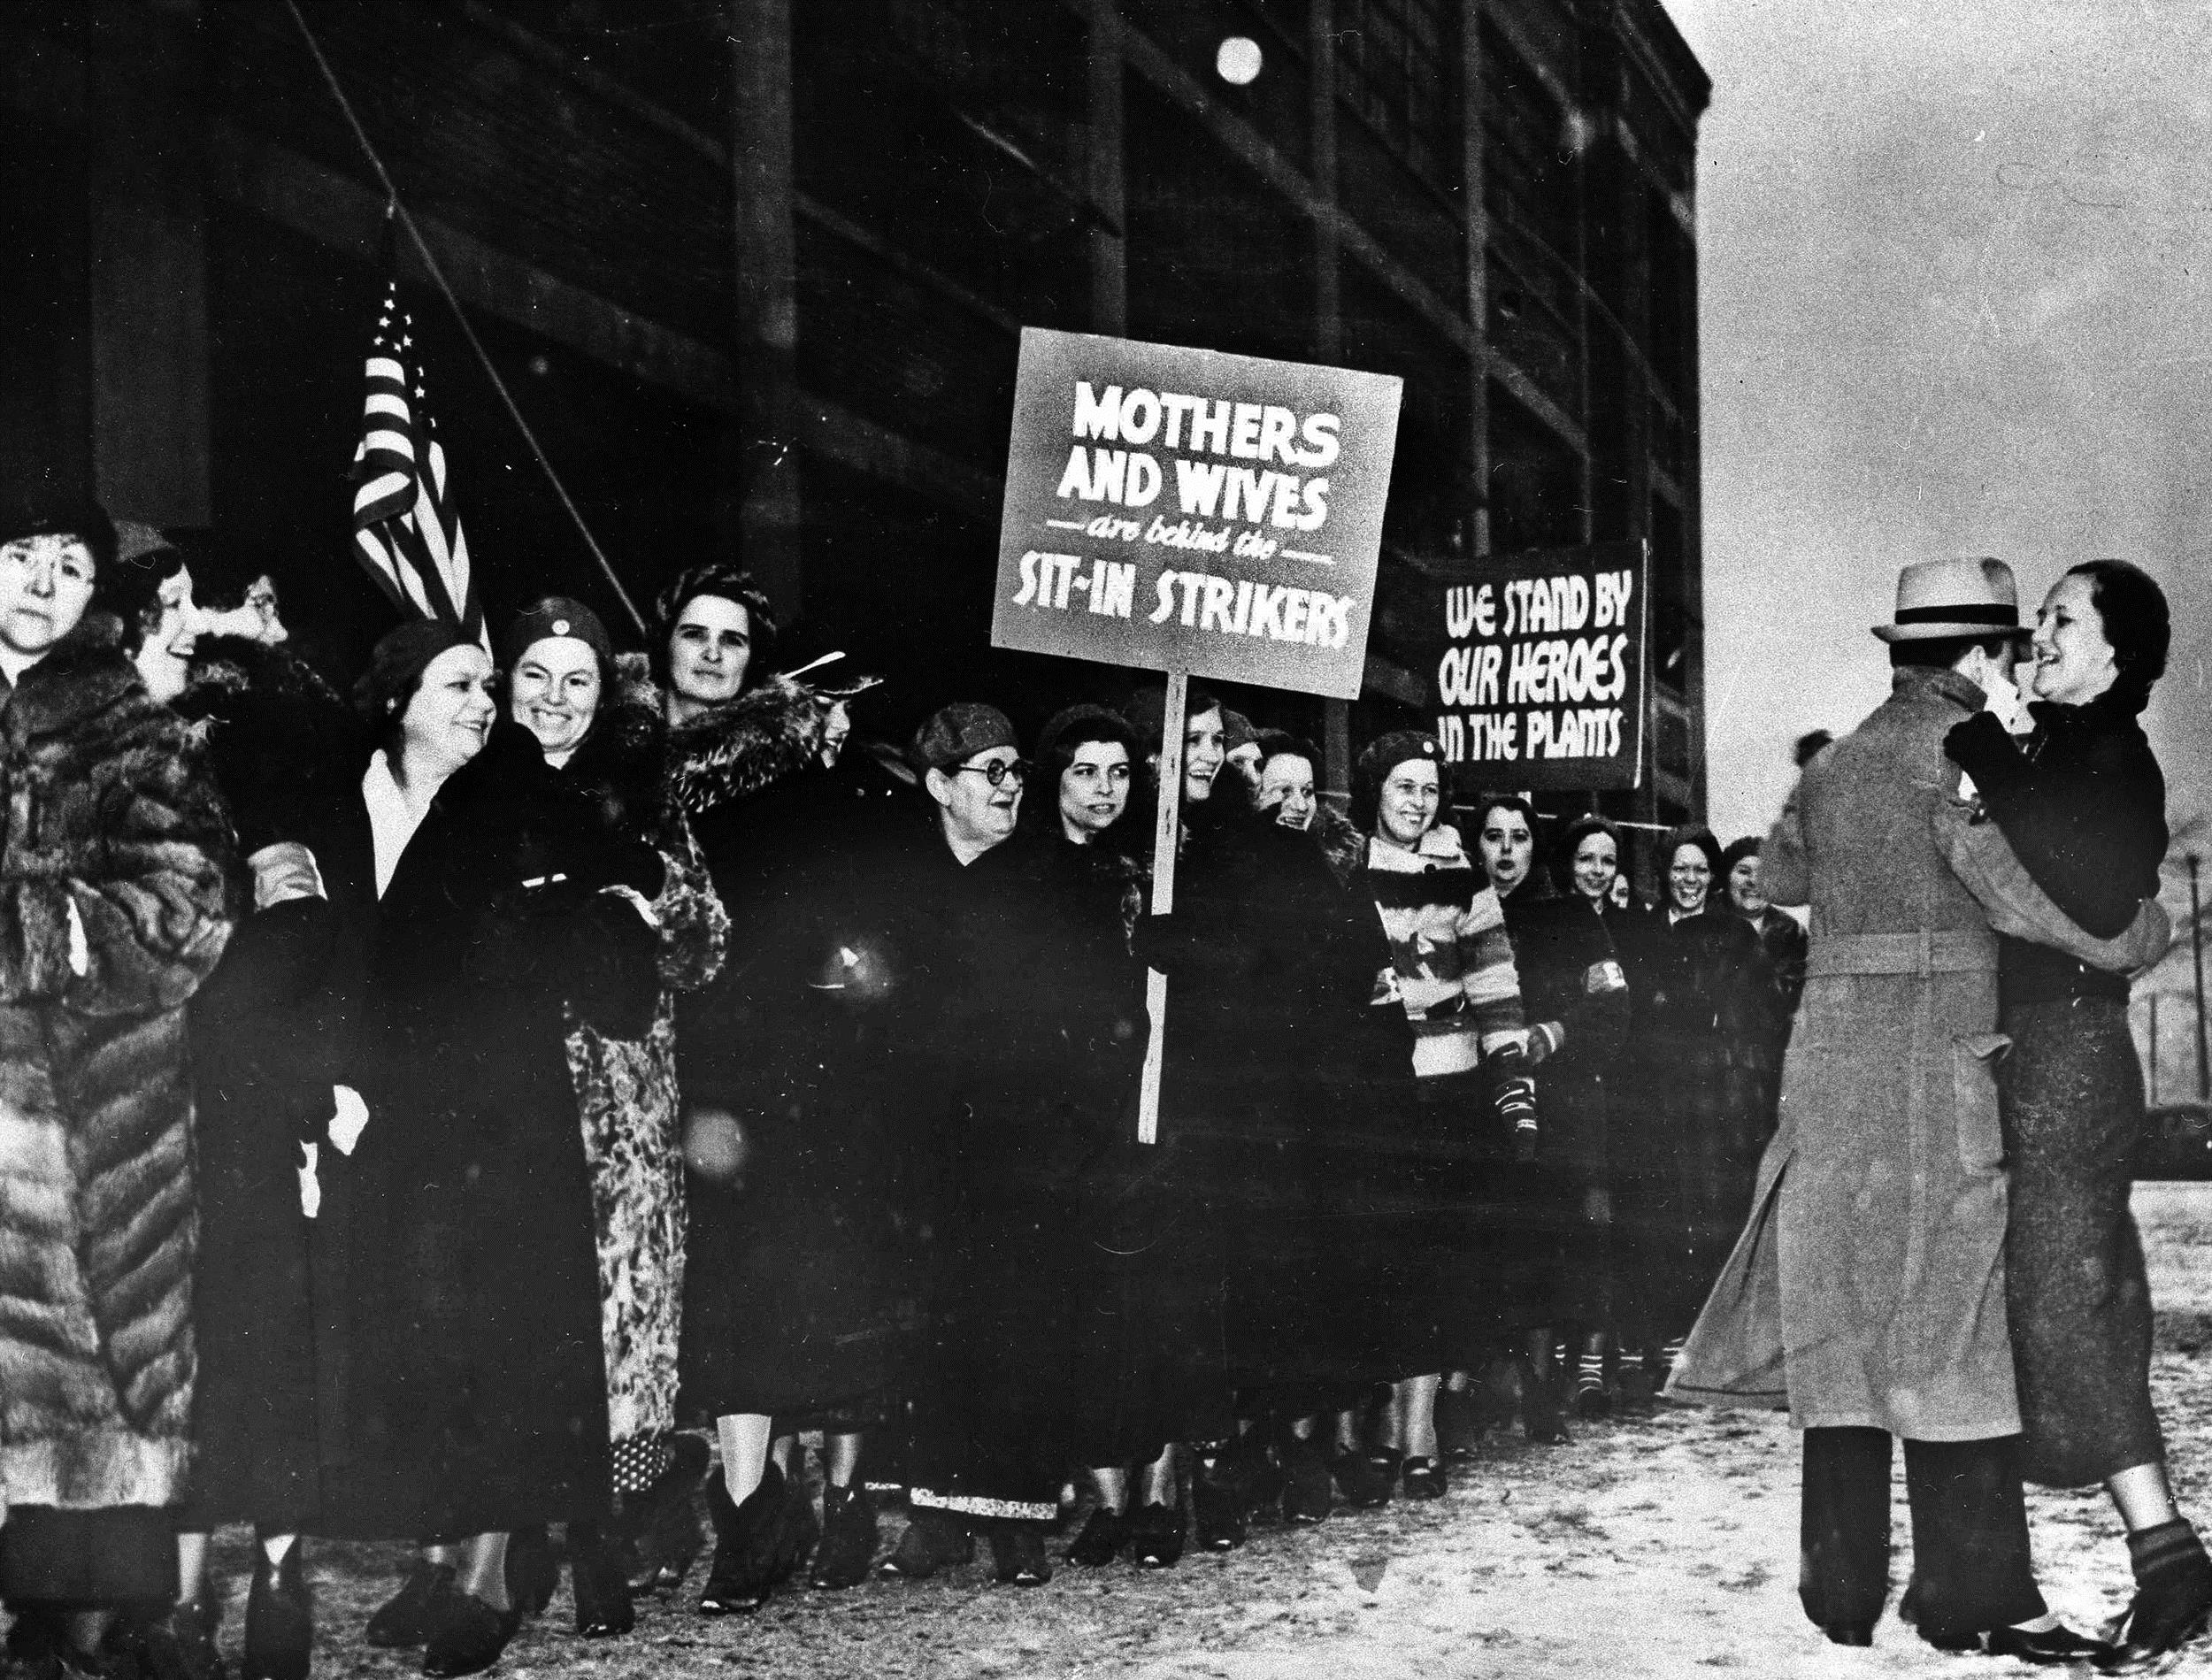 Image: Wives, sisters and sweethearts of strikers demonstrate at plant in Flint, Mich.,